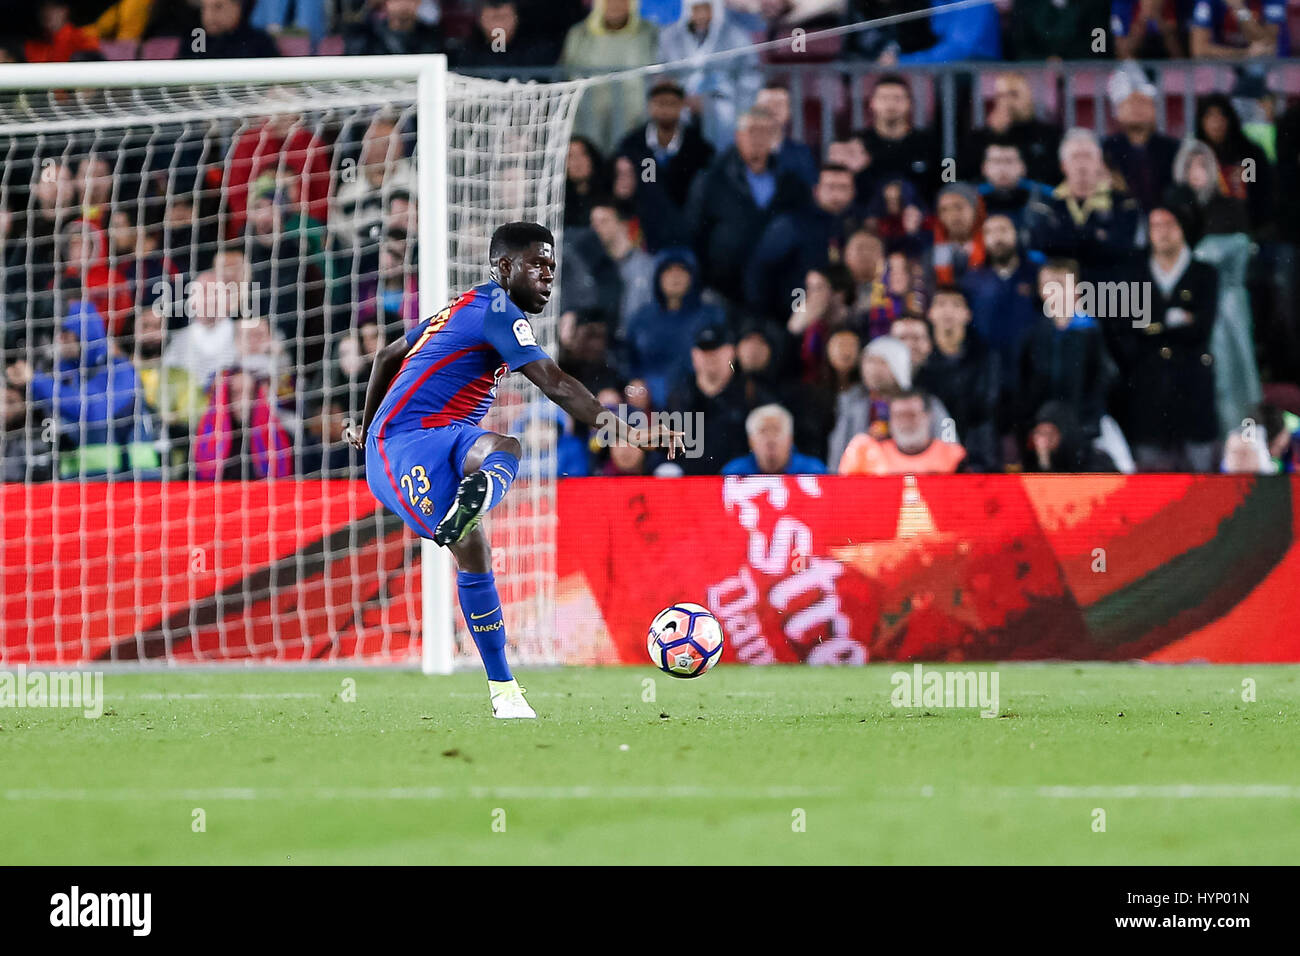 April 5, 2017: Samuel Umtiti during the match between FC Barcelona vs Sevilla, for the round 30 of the Liga Santander, - Stock Image